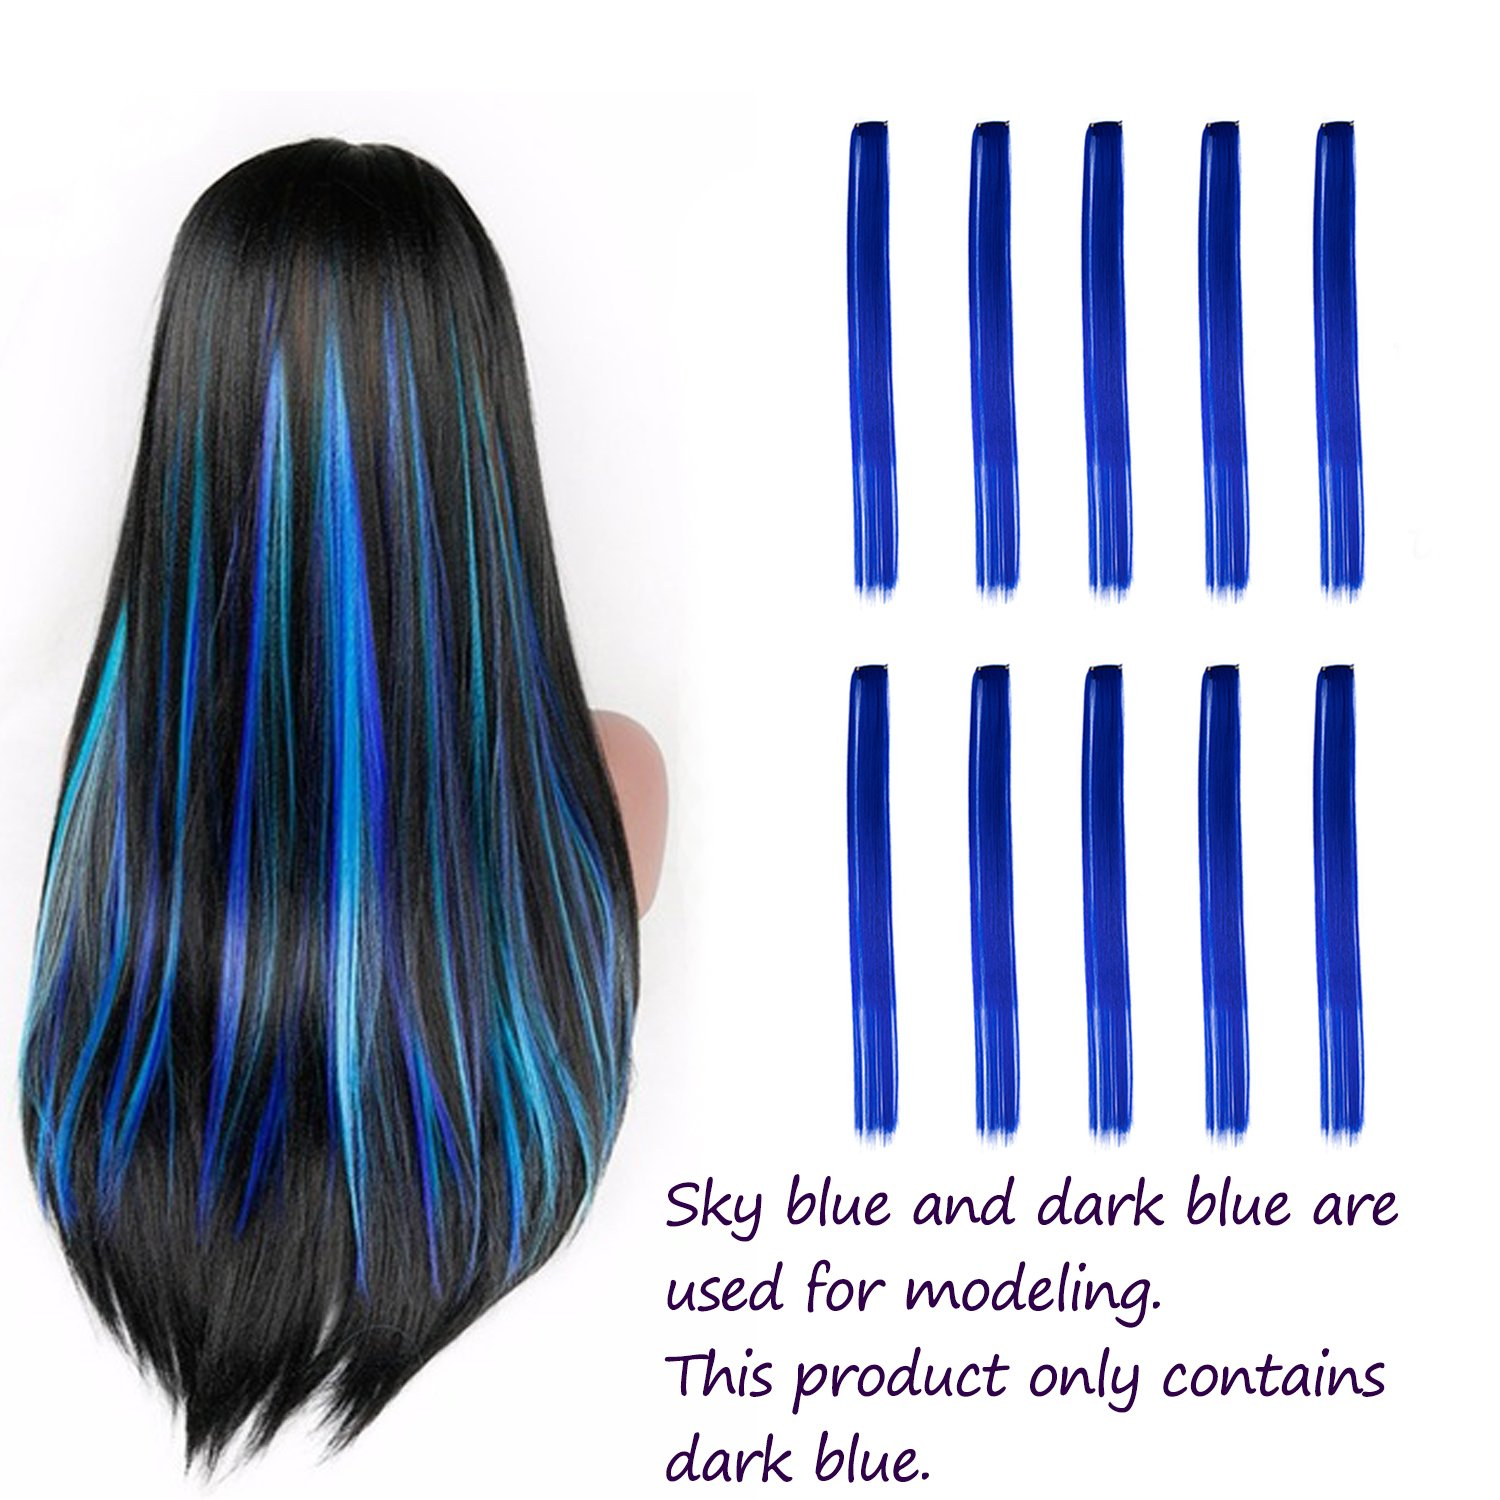 Blue Aqua hair highlights forecasting dress in everyday in 2019